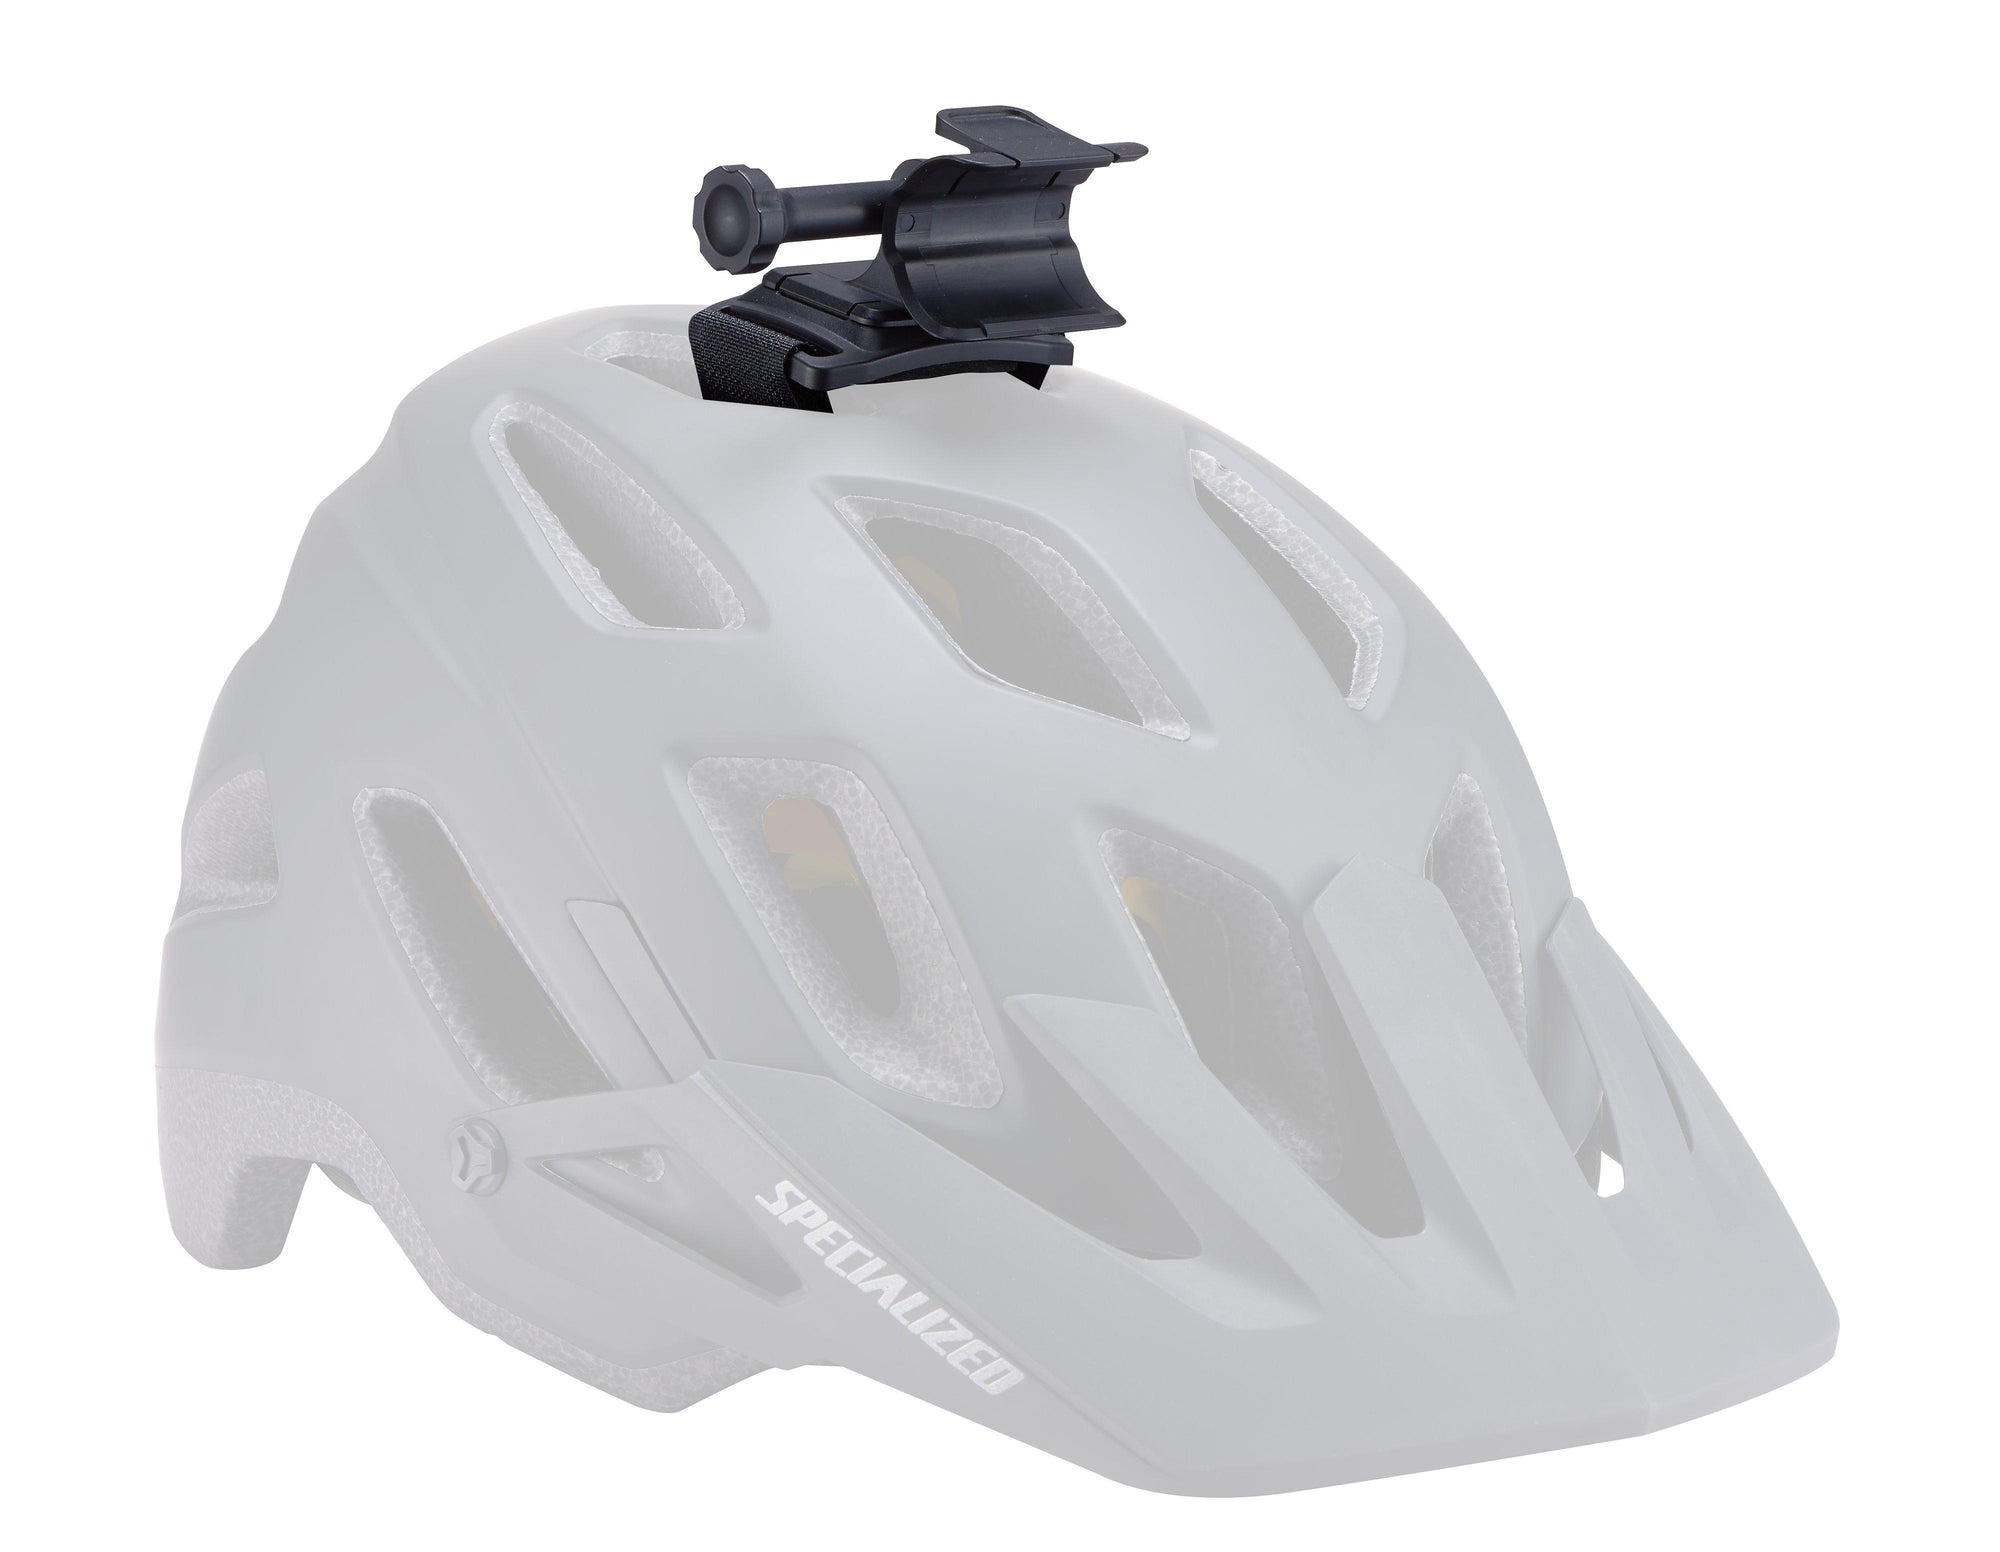 Flux™ 900/1200 Headlight Helmet Mount